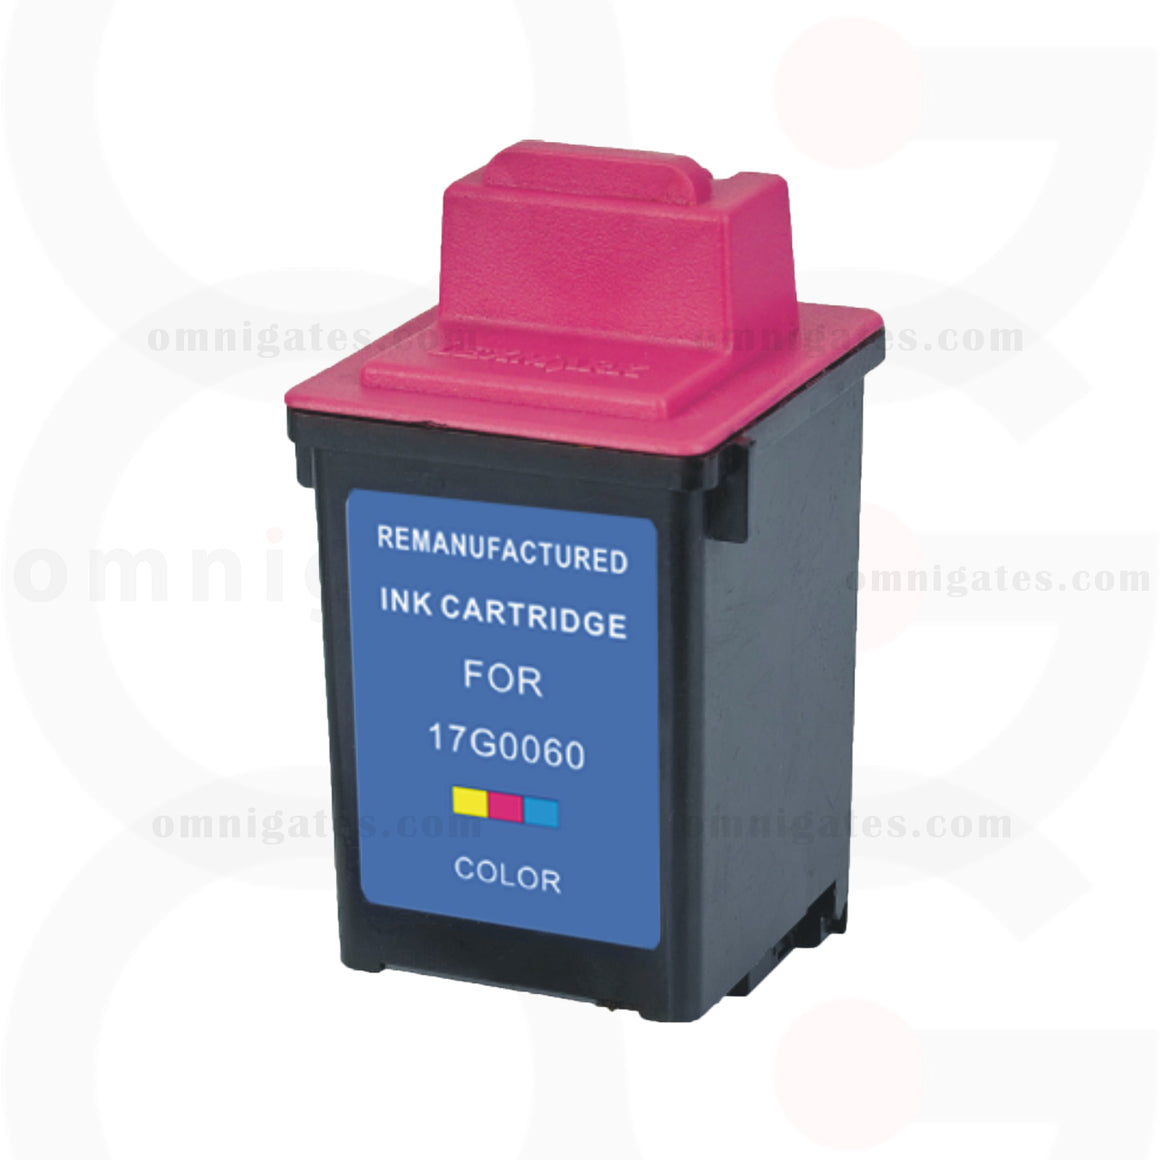 Color OGP Remanufactured Lexmark 17G0060 Inkjet Cartridge